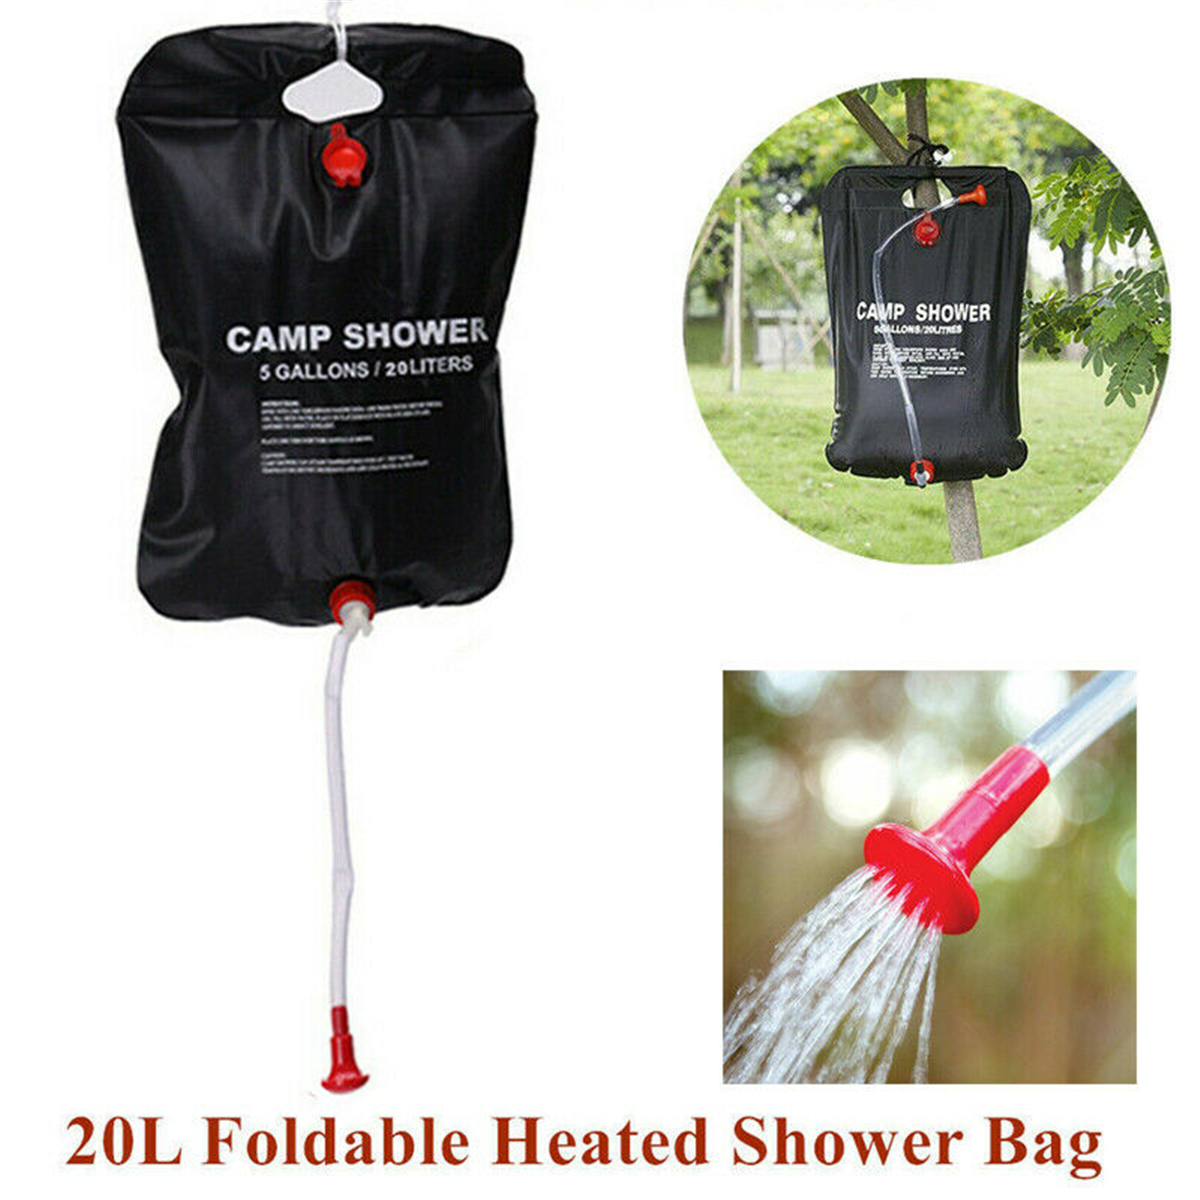 20L Water Bag Foldable Solar Energy Heated Camp PVC SHOWER BAG OUTDOOR CAMPING